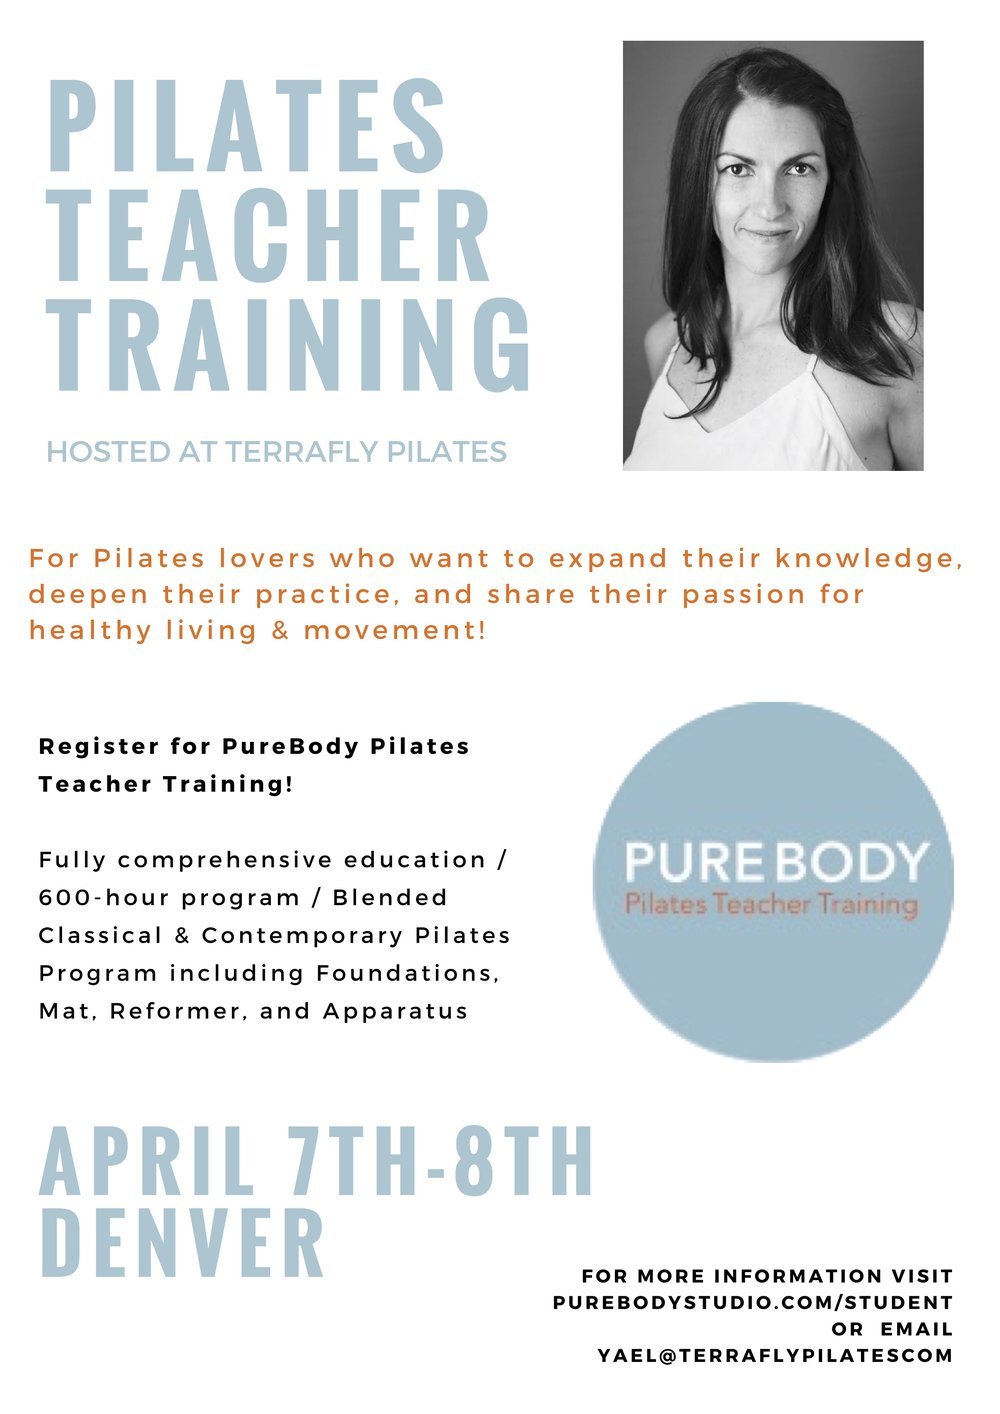 Pure Body Pilates Teacher Training  starts April 7th and we're so excited to announce that Yael will now be leading the program! It's not too late to sign up or get more information - simply email yael@terraflypilates.com. If you've ever considered becoming a teacher, now is your chance!